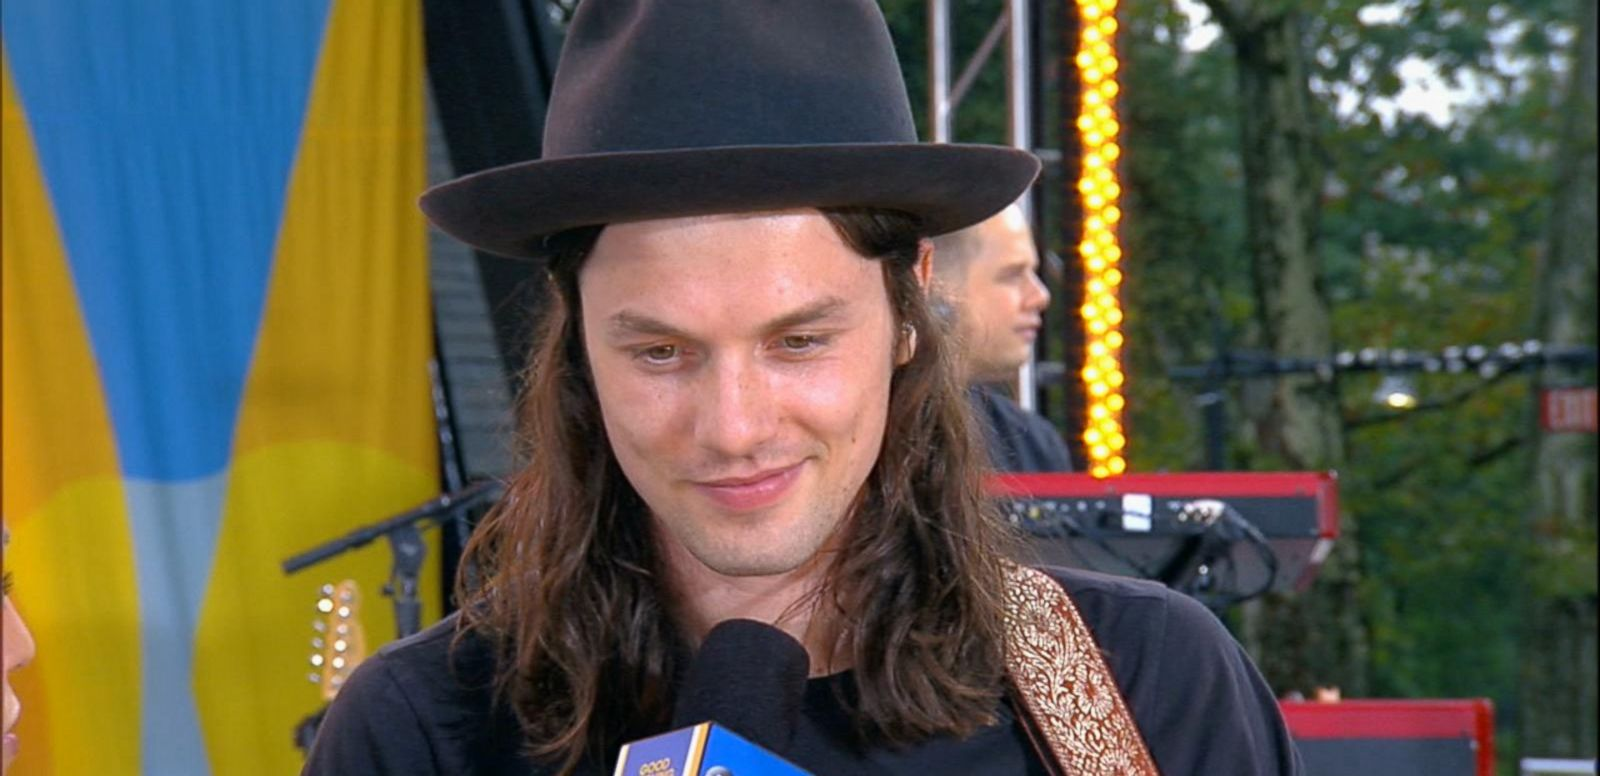 VIDEO: James Bay to 'Keep Playing On' After 'Let It Go' Success